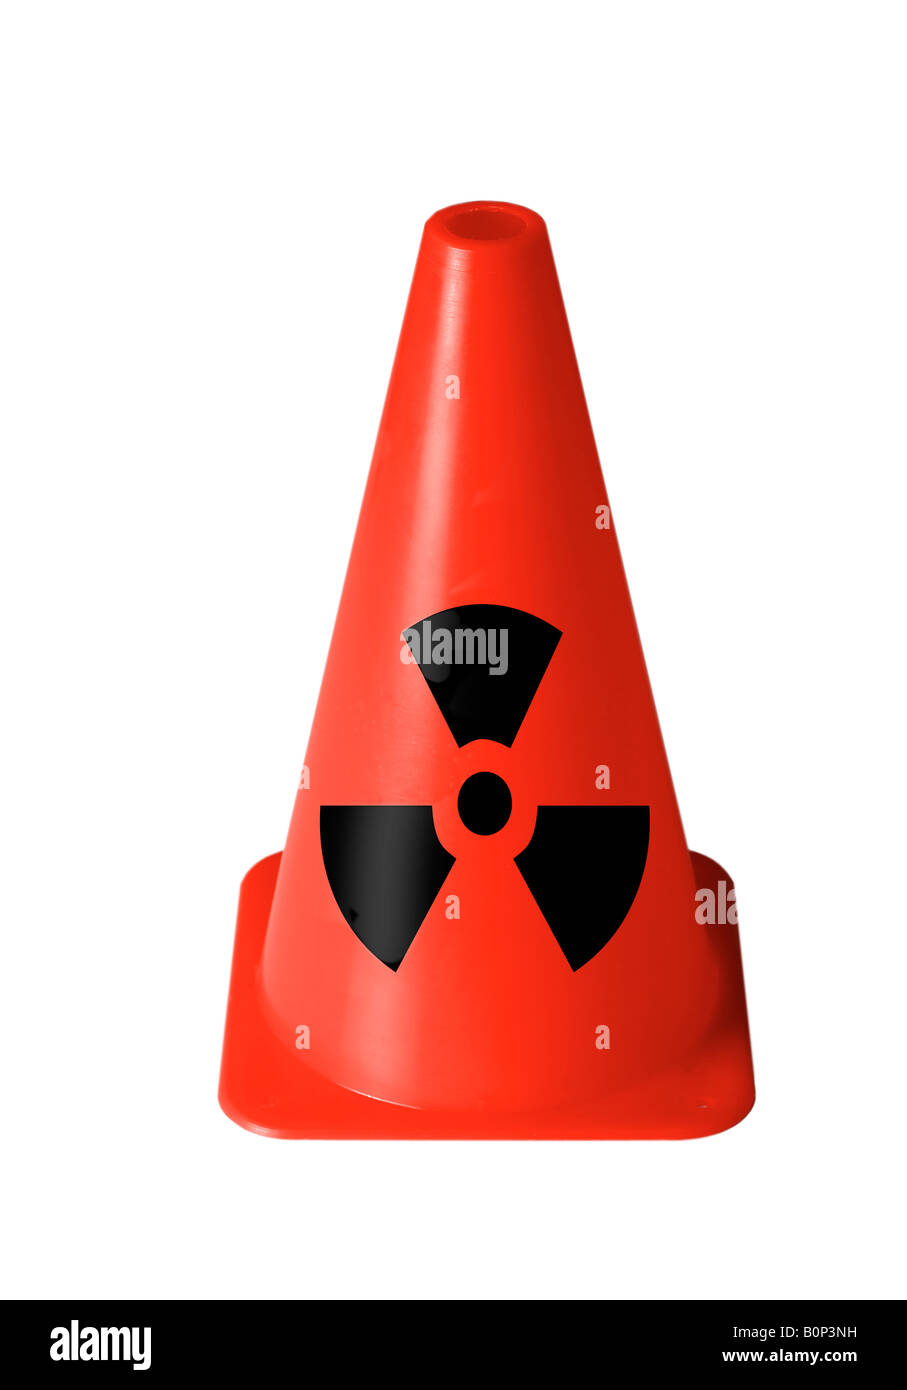 bright red safety cone with radiation sign printed on against white cutout Stock Photo